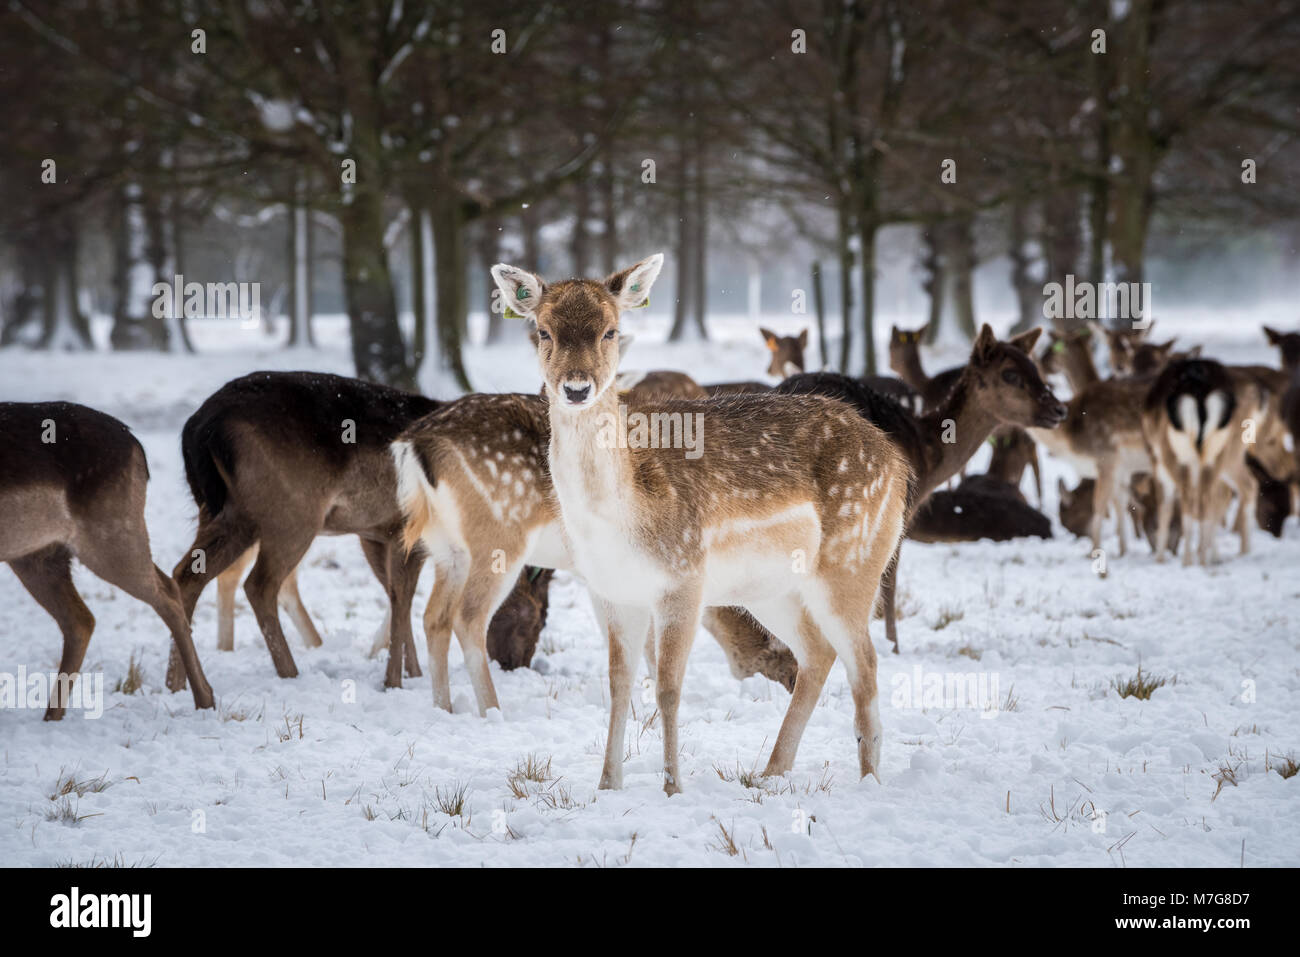 Deers on the snow - Stock Image